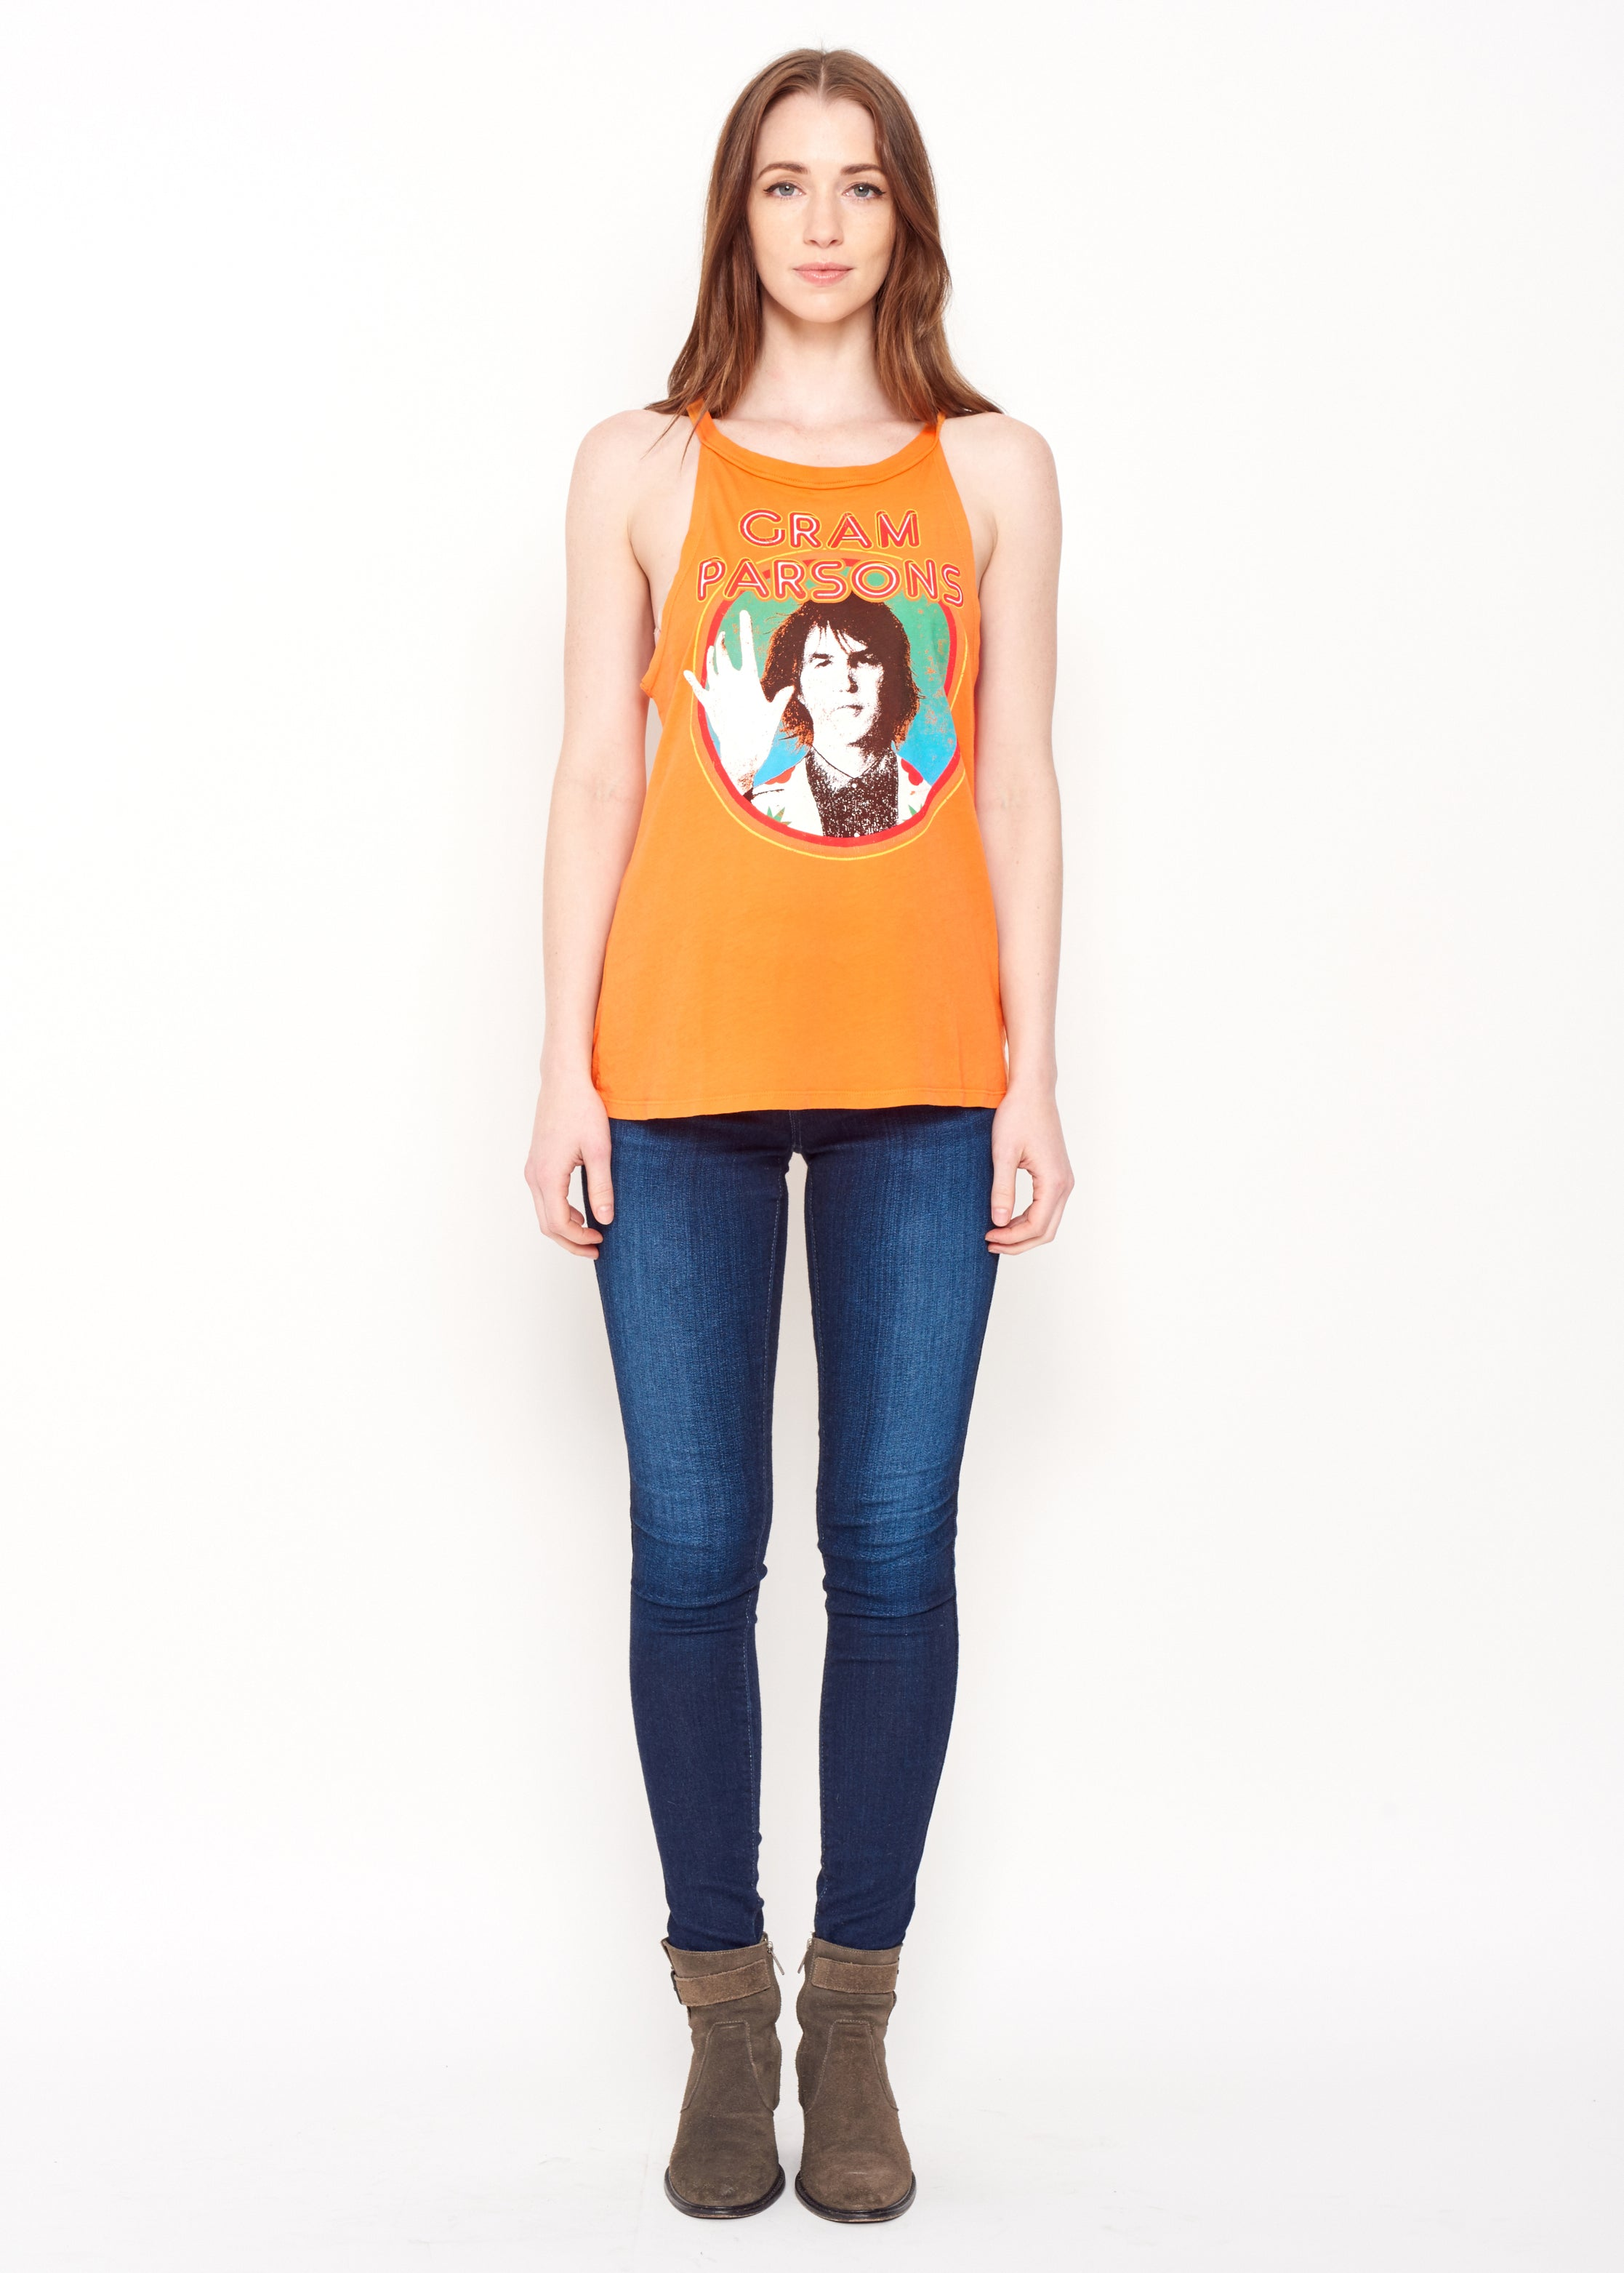 Gram Parsons Circle Halter Tank - Women's Tee Shirt - Midnight Rider